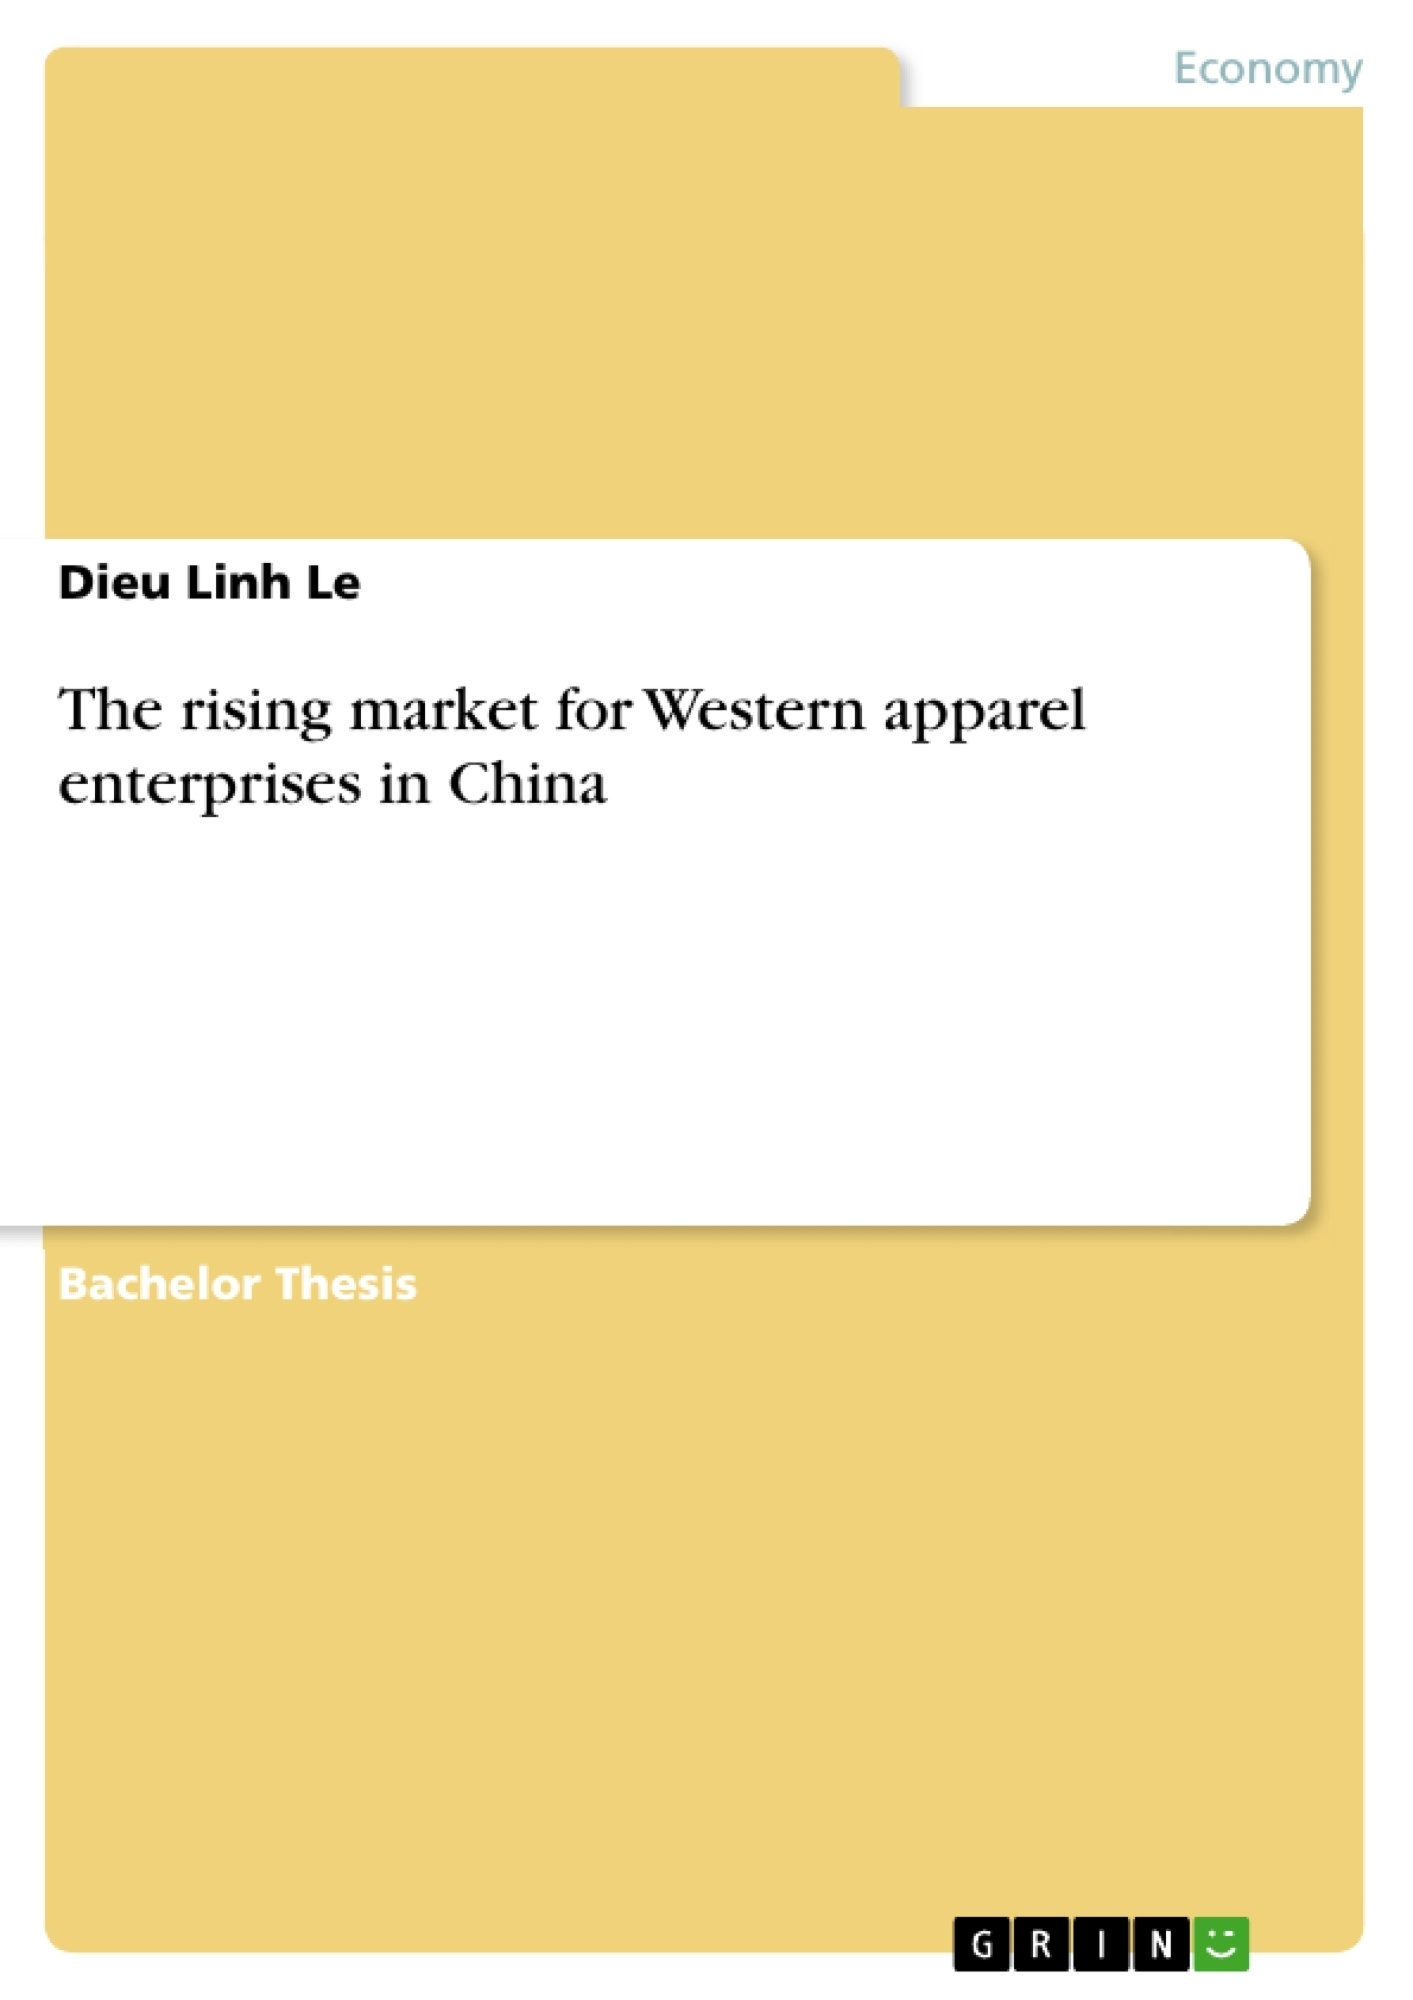 Title: The rising market for Western apparel enterprises in China